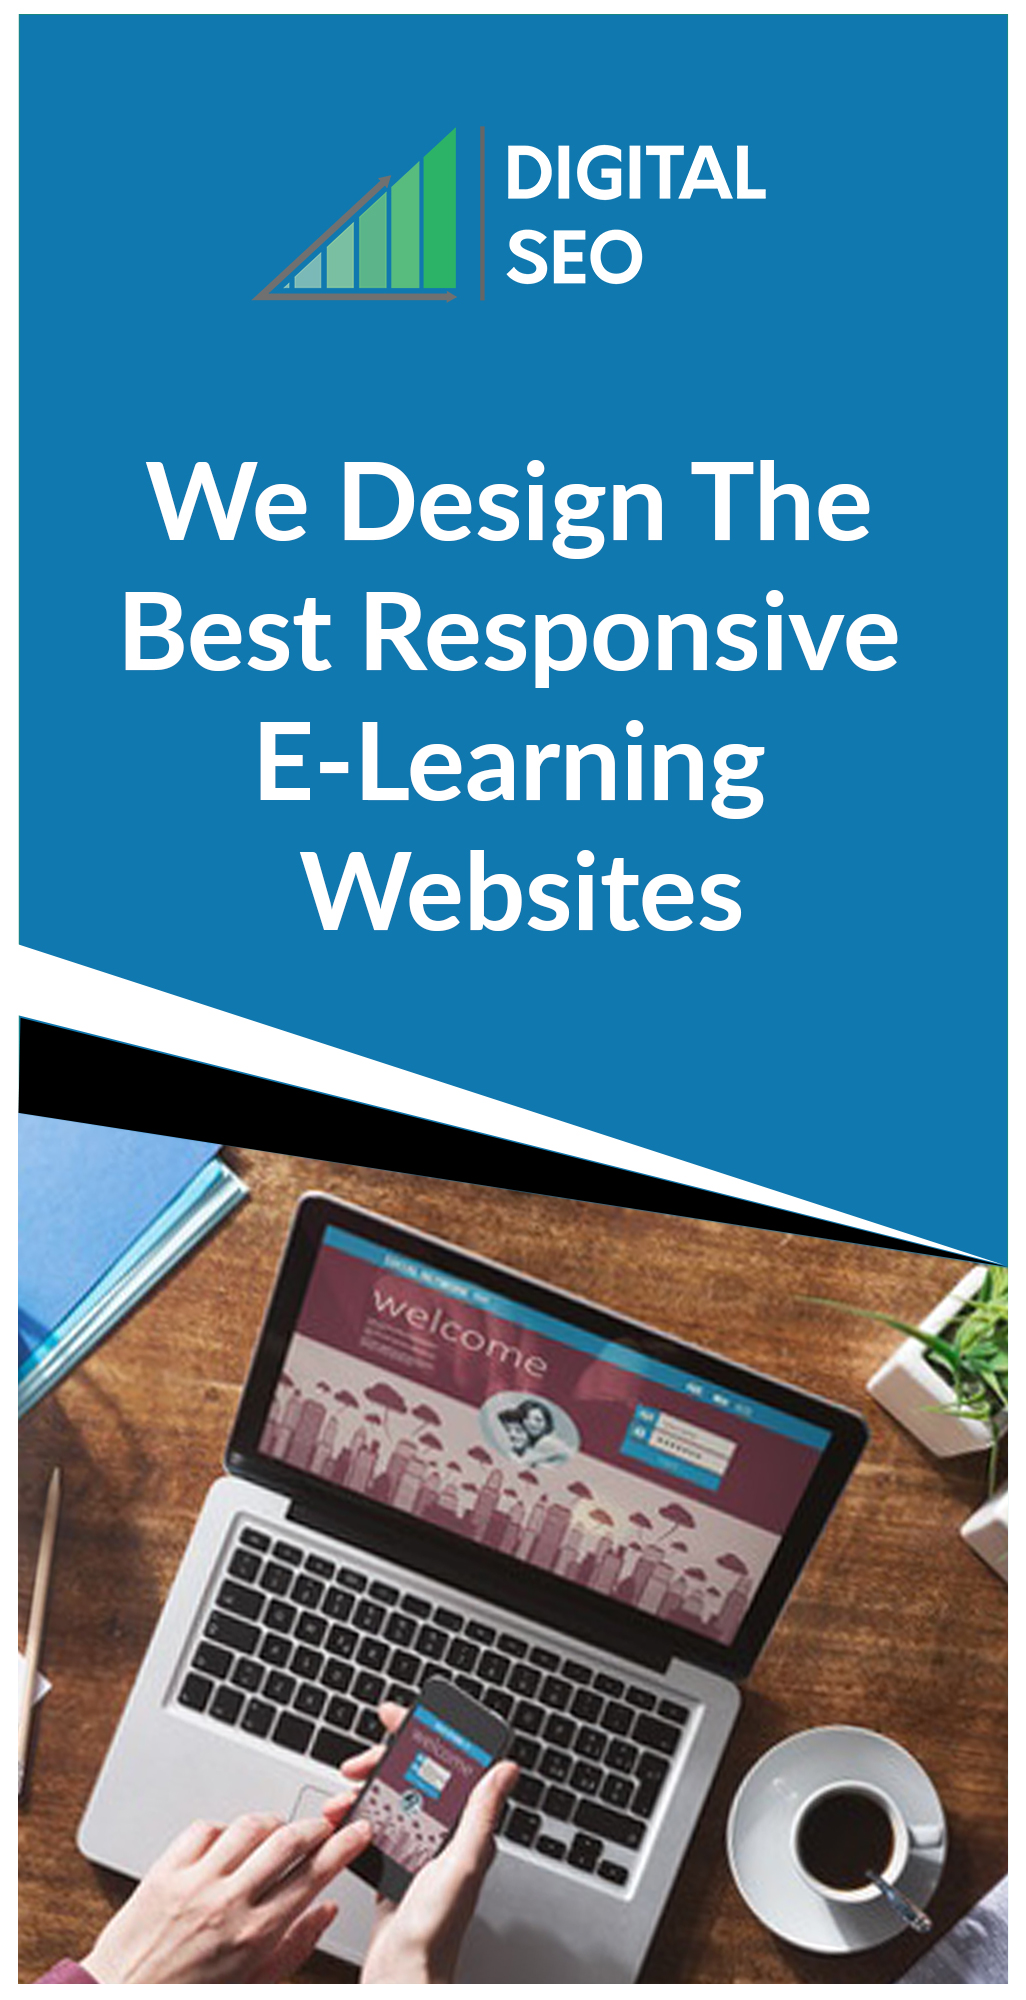 Responsive Web Designing In Chennai For An E-Learning site which is shown on a laptop and mobile devices.